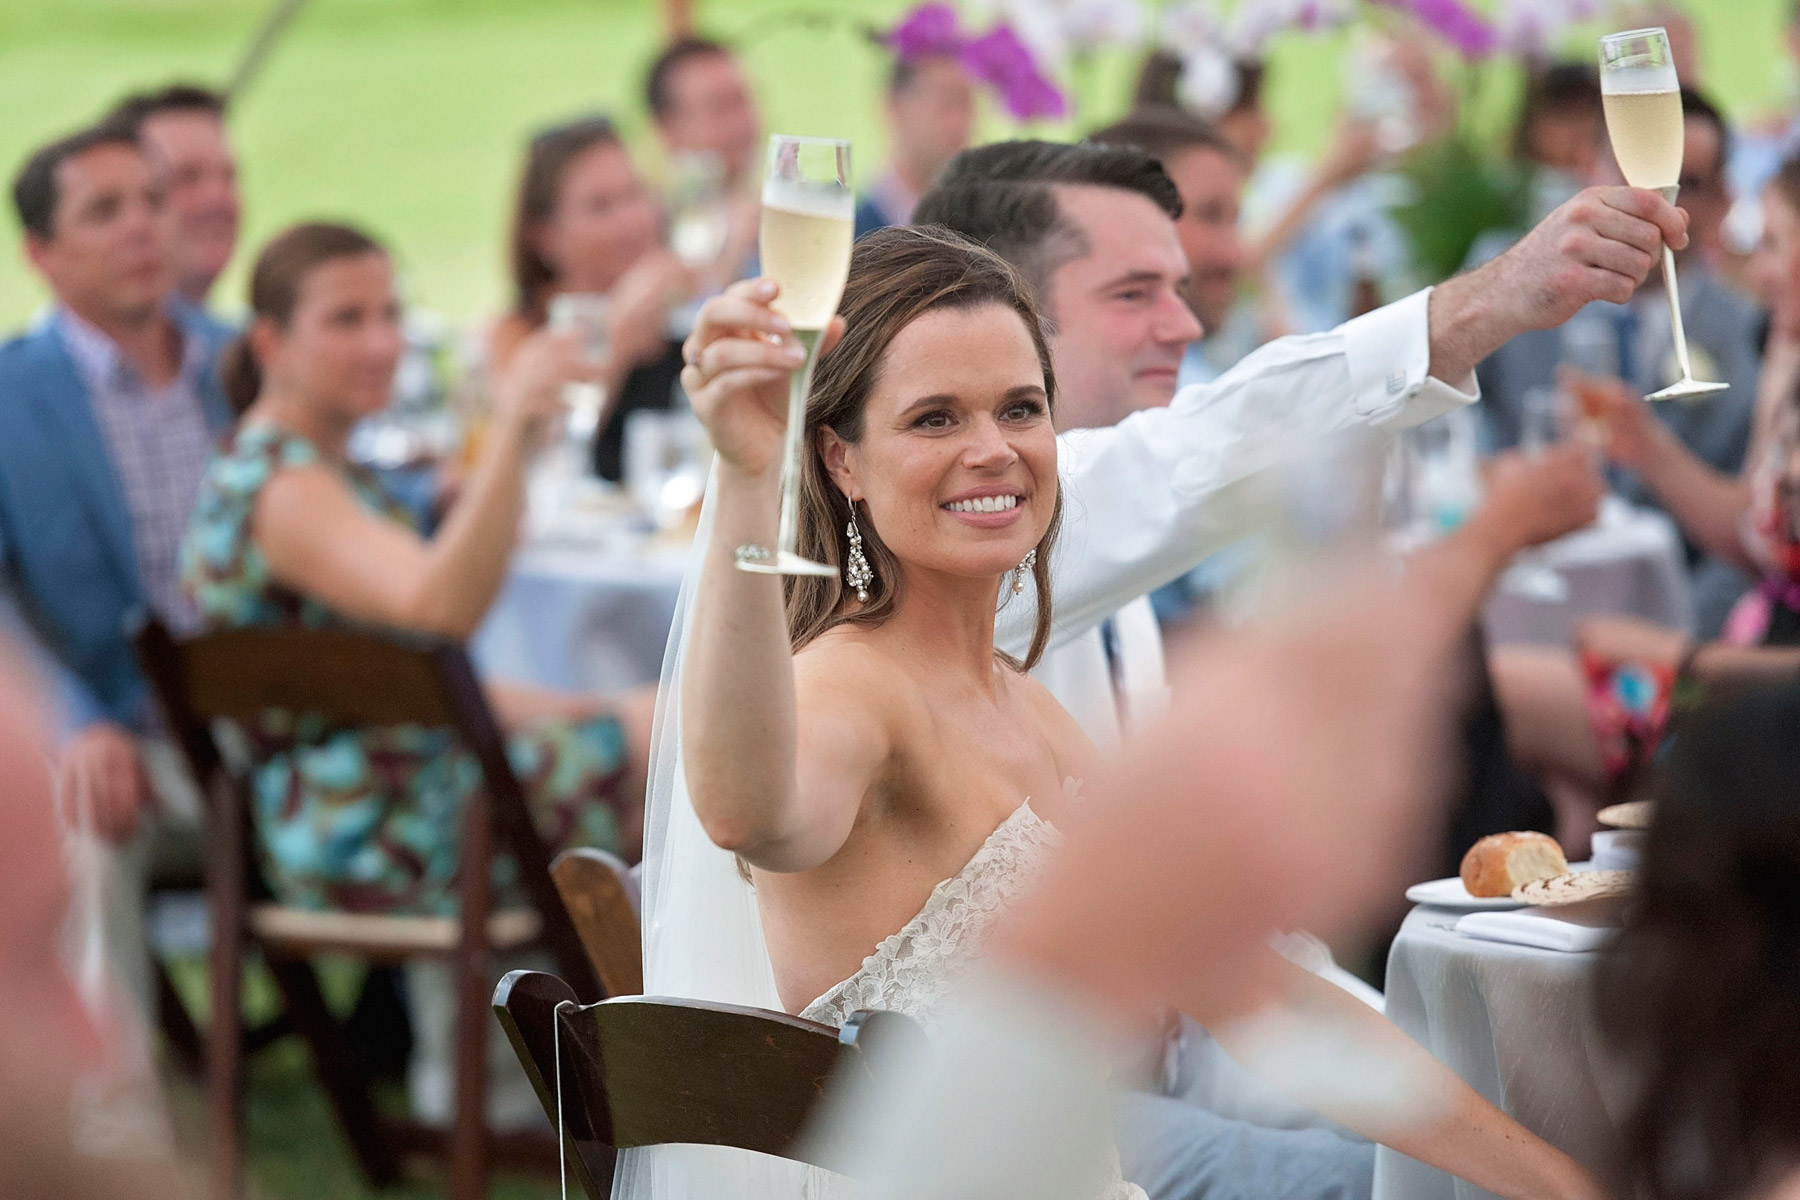 Newlyweds lift their glasses after wedding toast